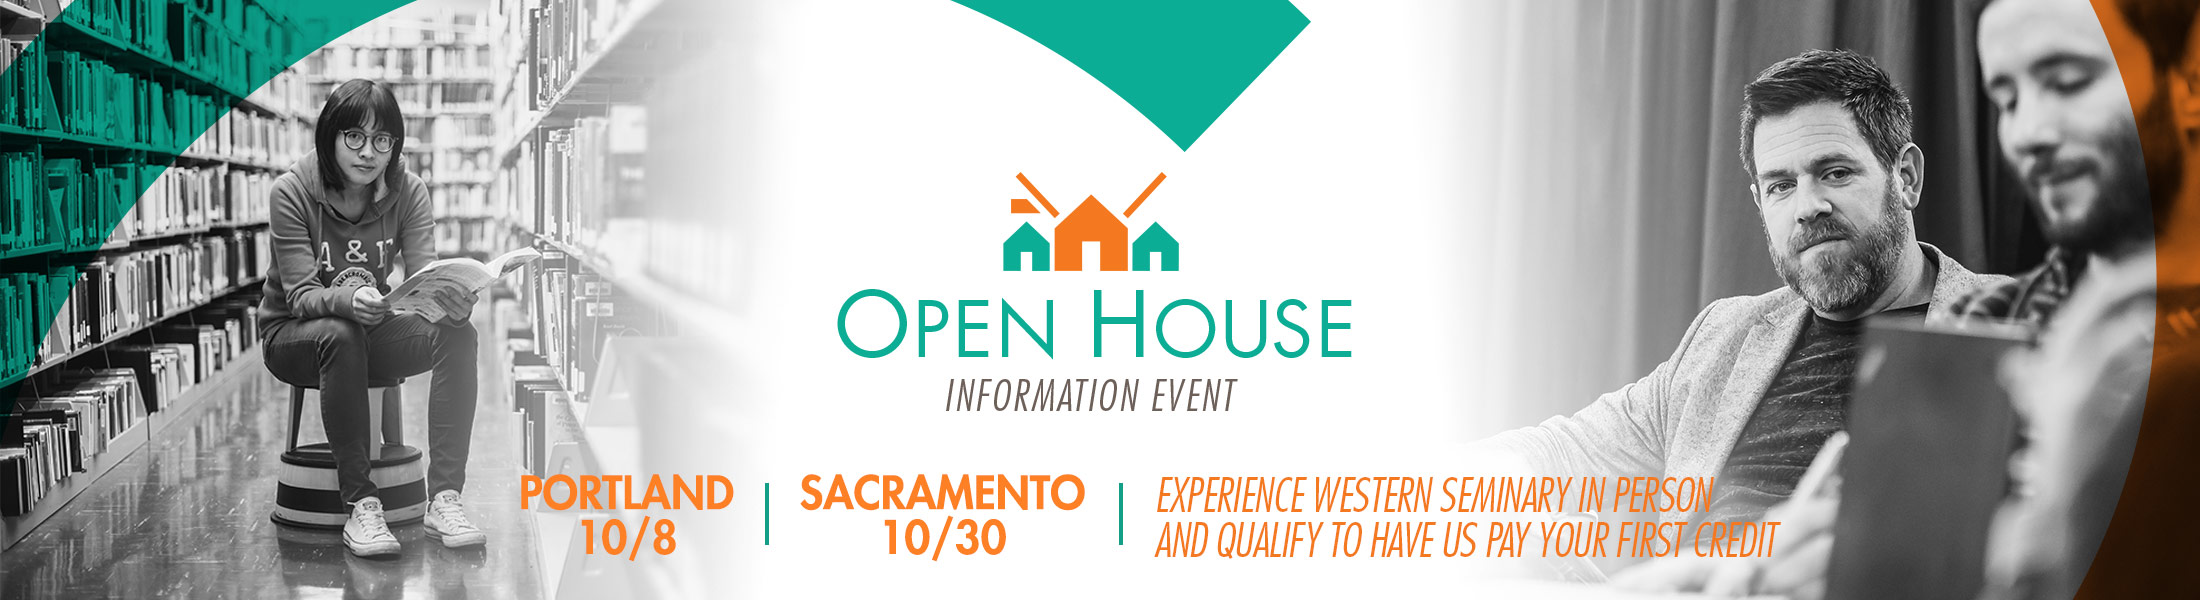 Visit Western Seminary Portland Campus at our Open House Information Event